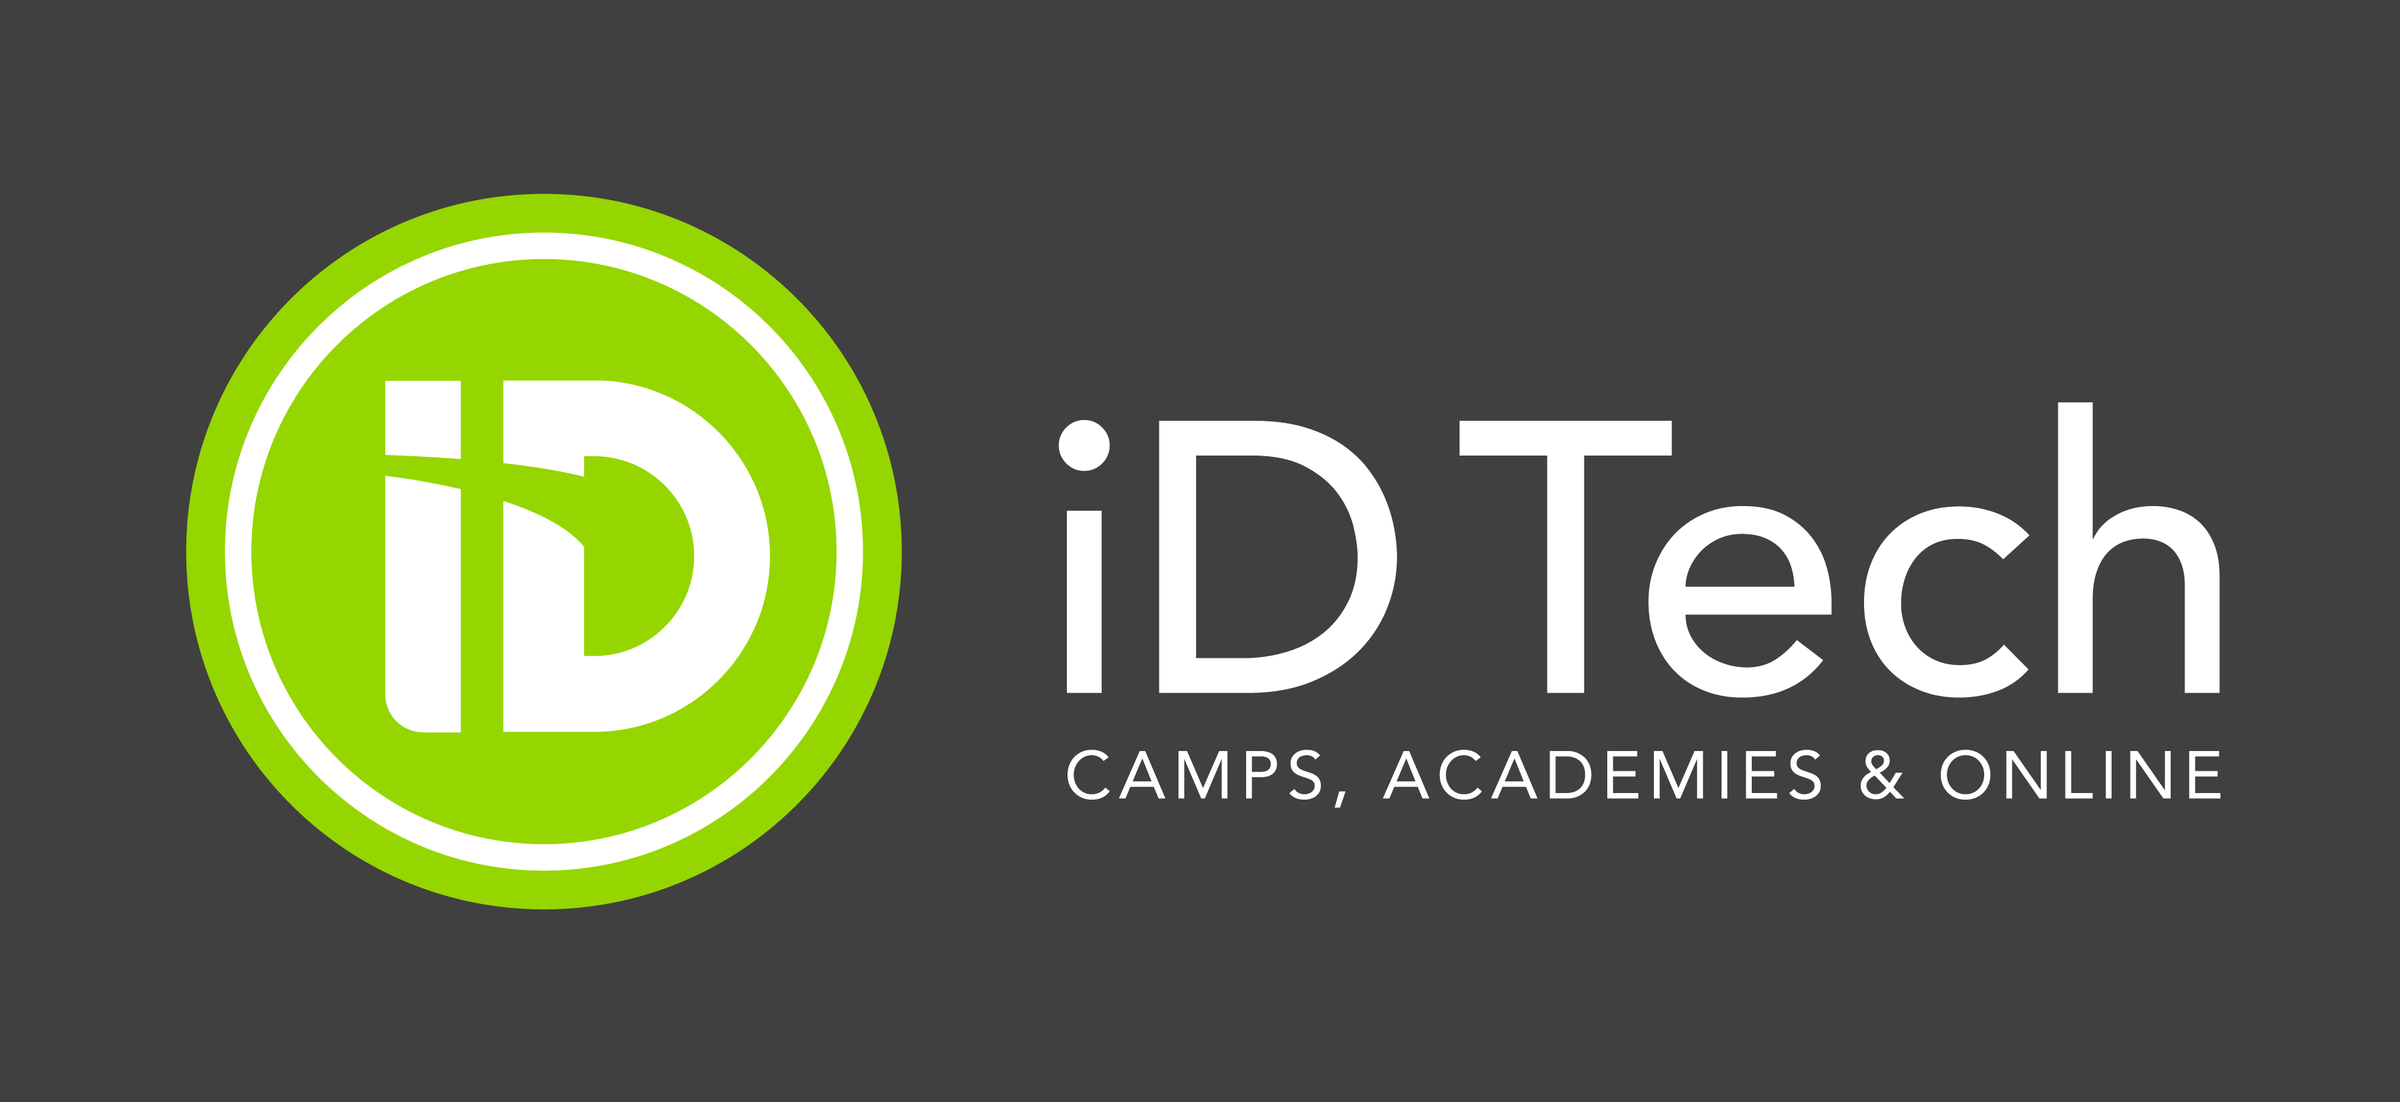 iD Tech Camps: #1 in STEM Education - Held at St. Mary's College of California